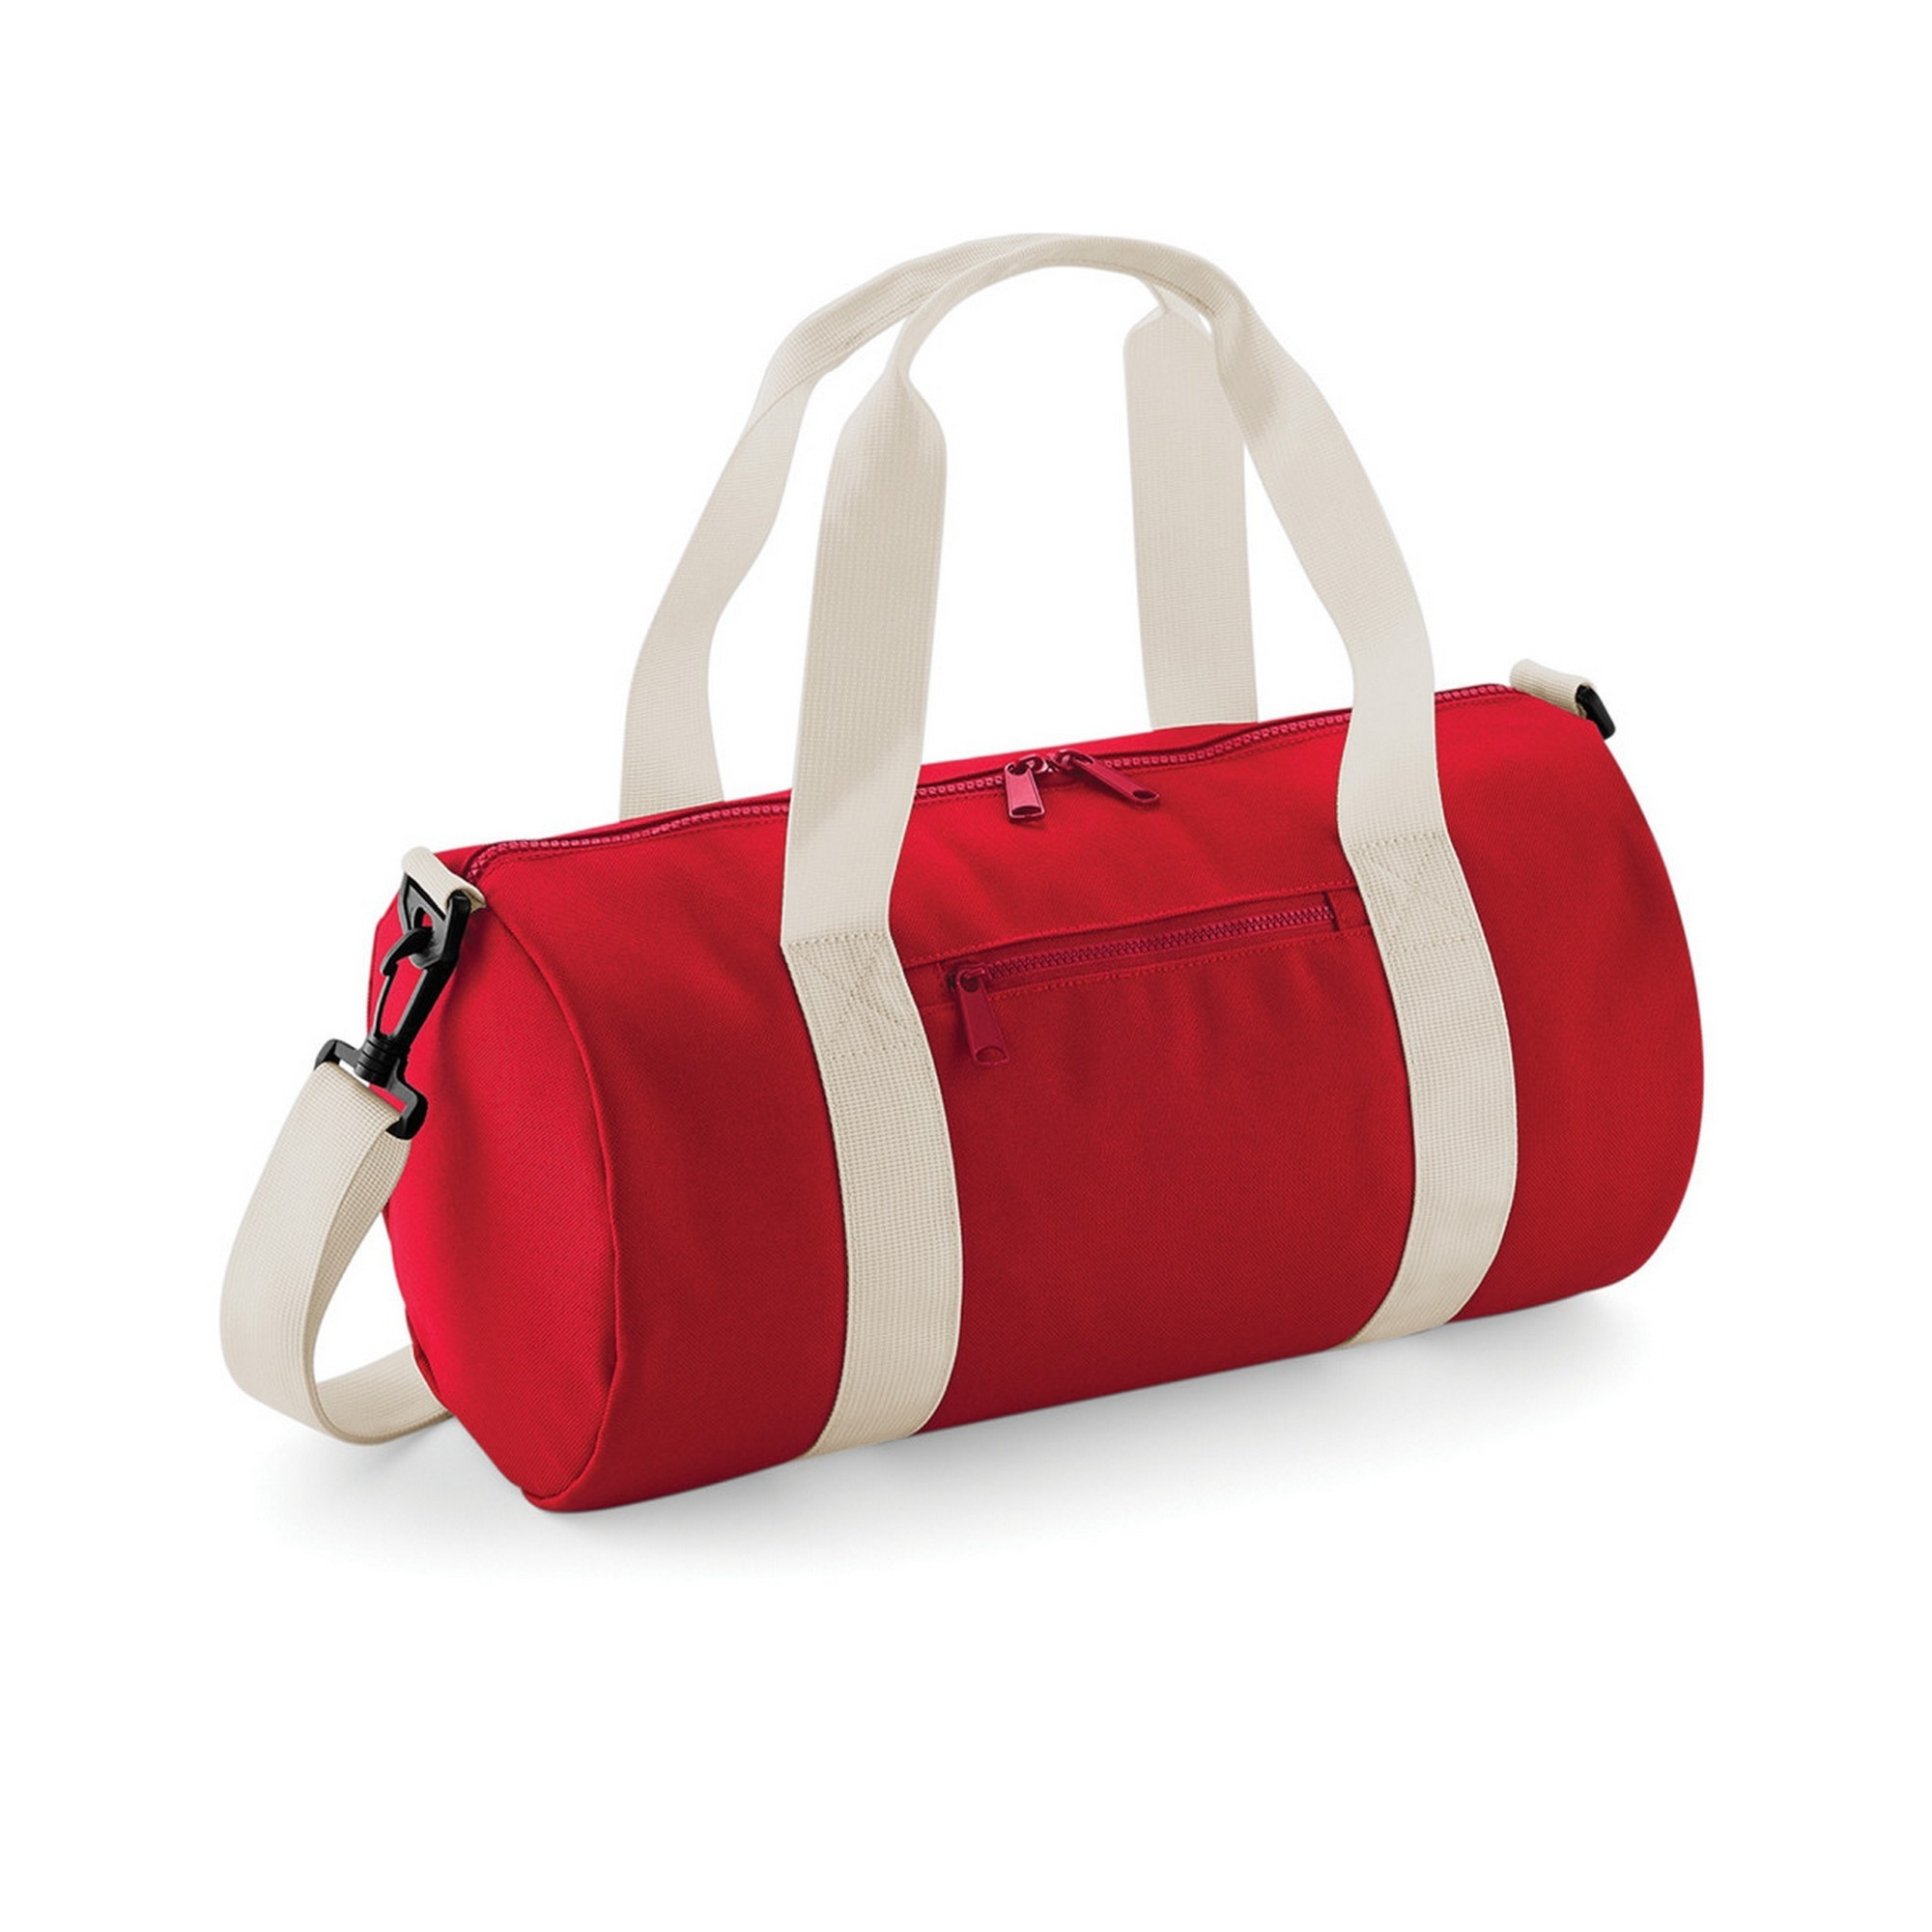 Bagbase Mini Barrel Shoulder Bag (Pack of 2) (One Size) (Classic Red/Off White)